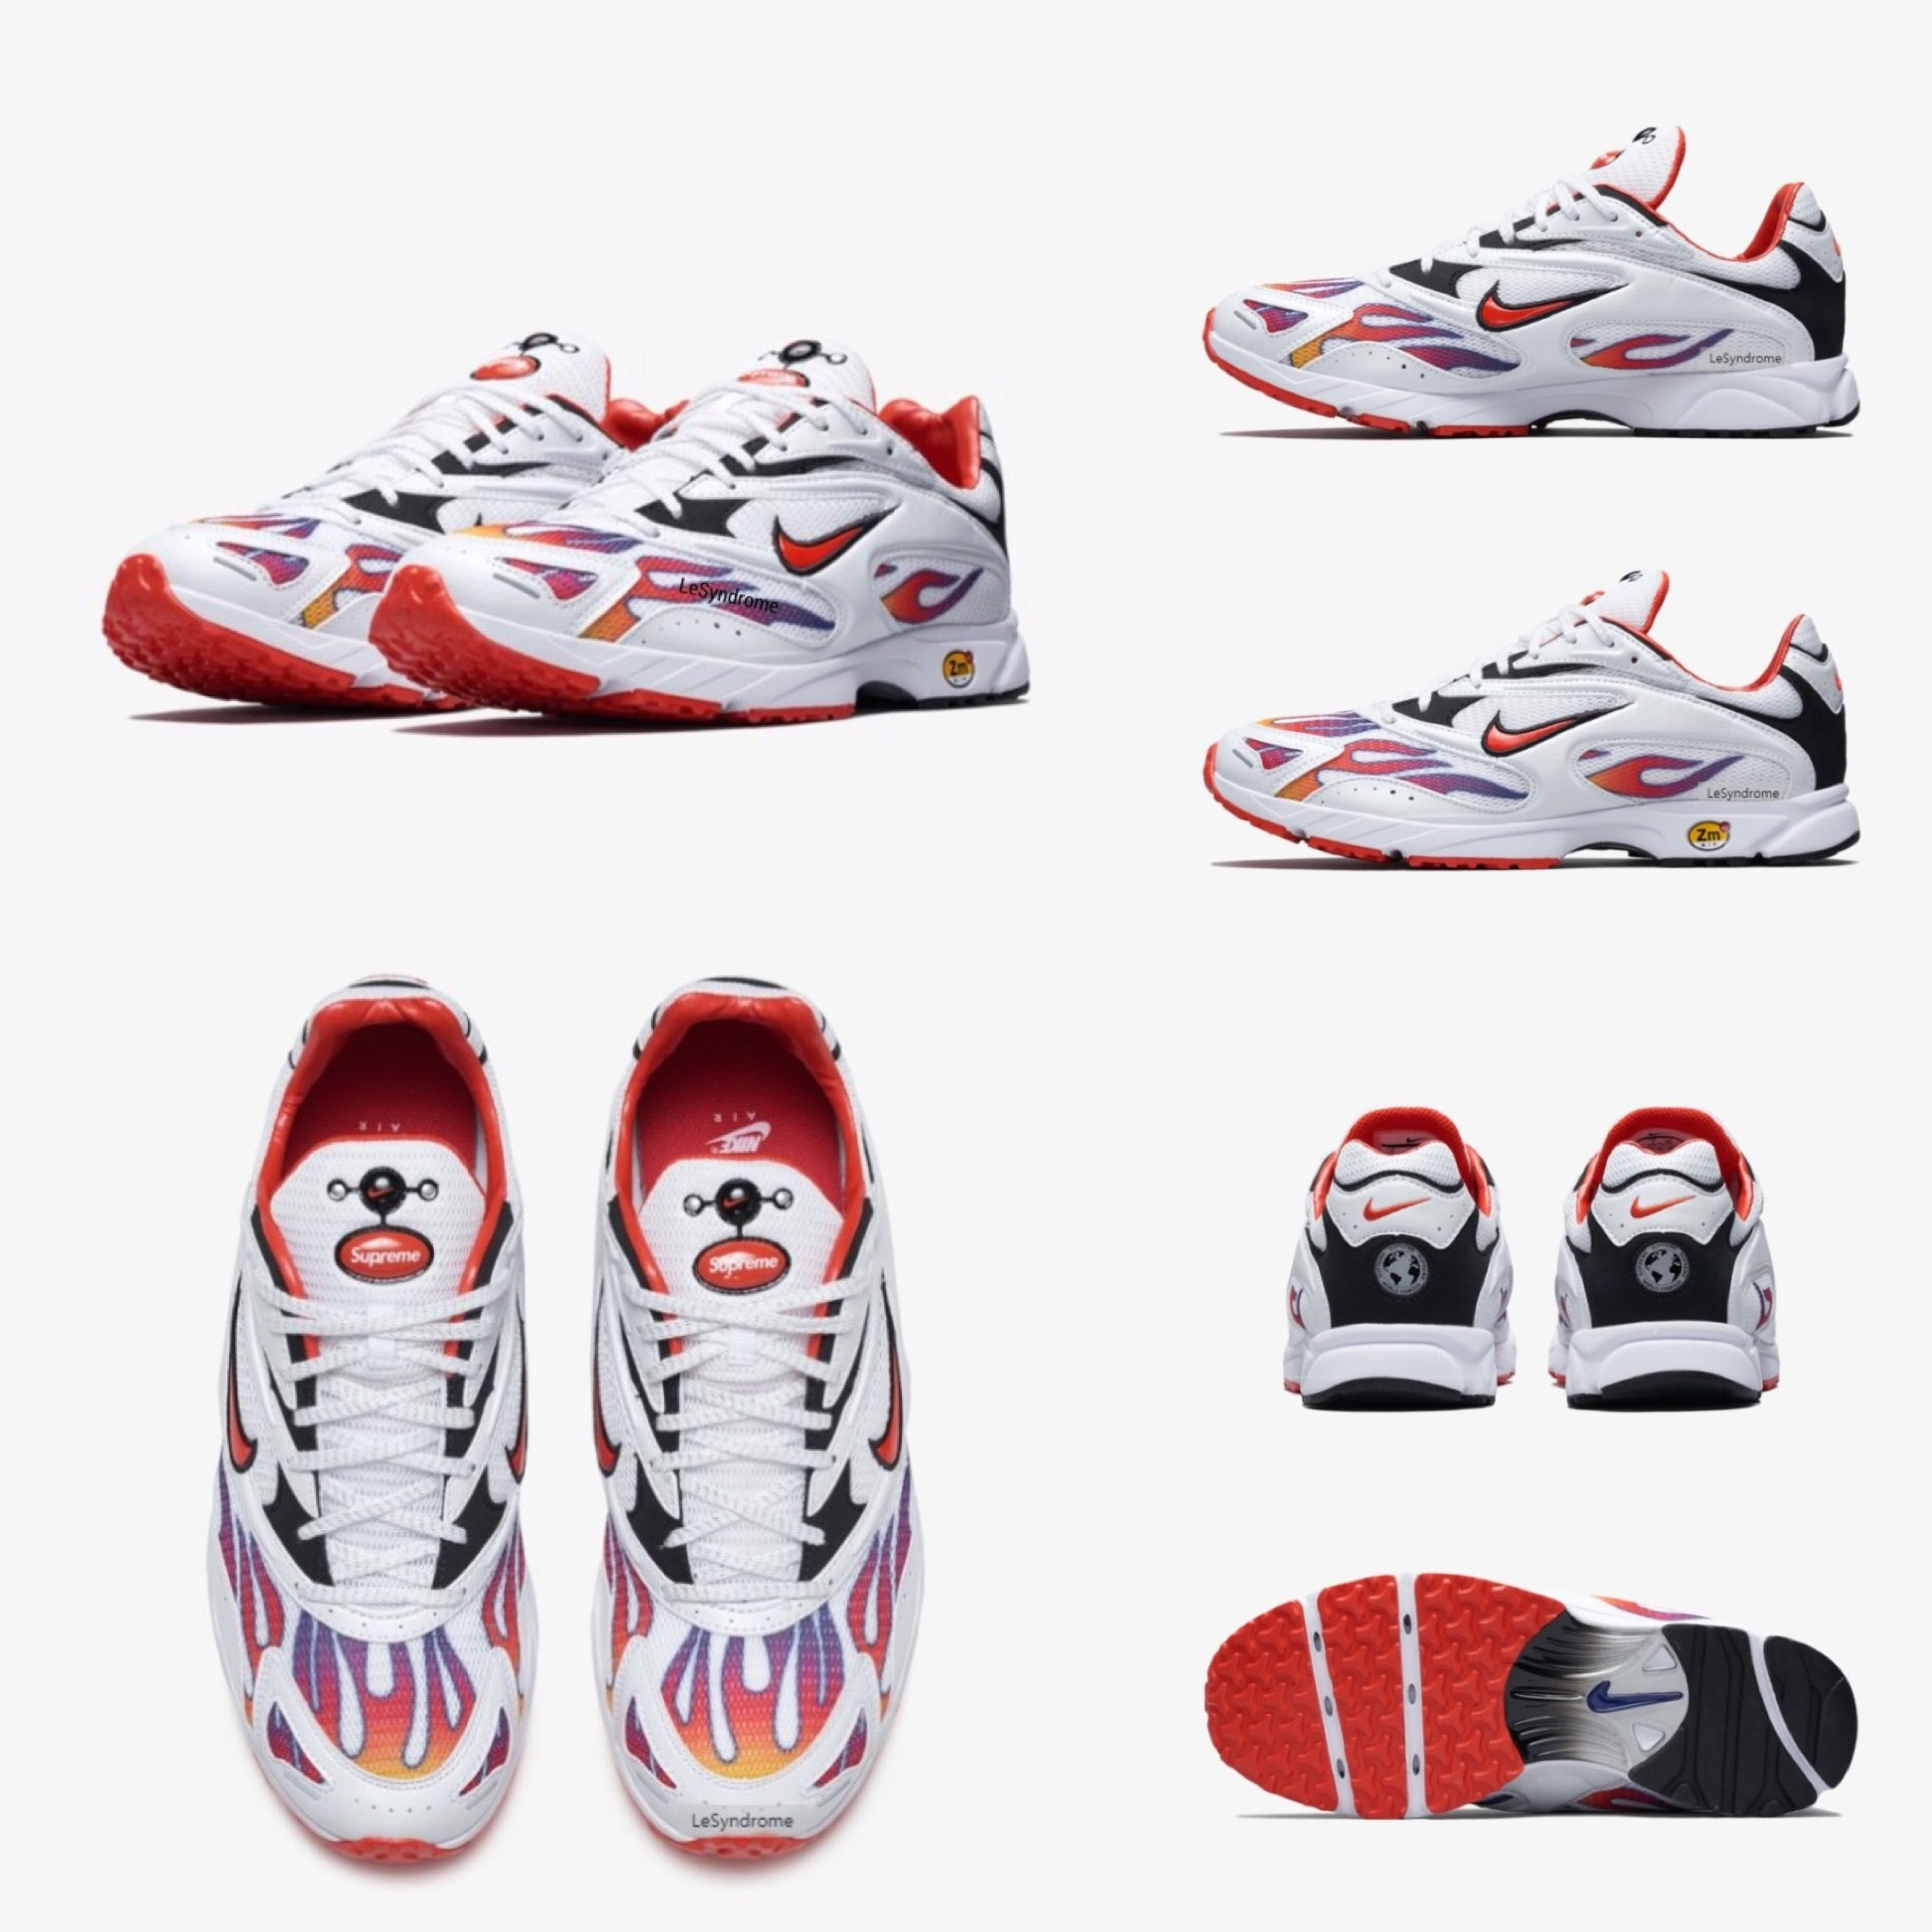 supreme-nike-air-zoom-streak-spectrum-plus-18ss-release-20180616-week17